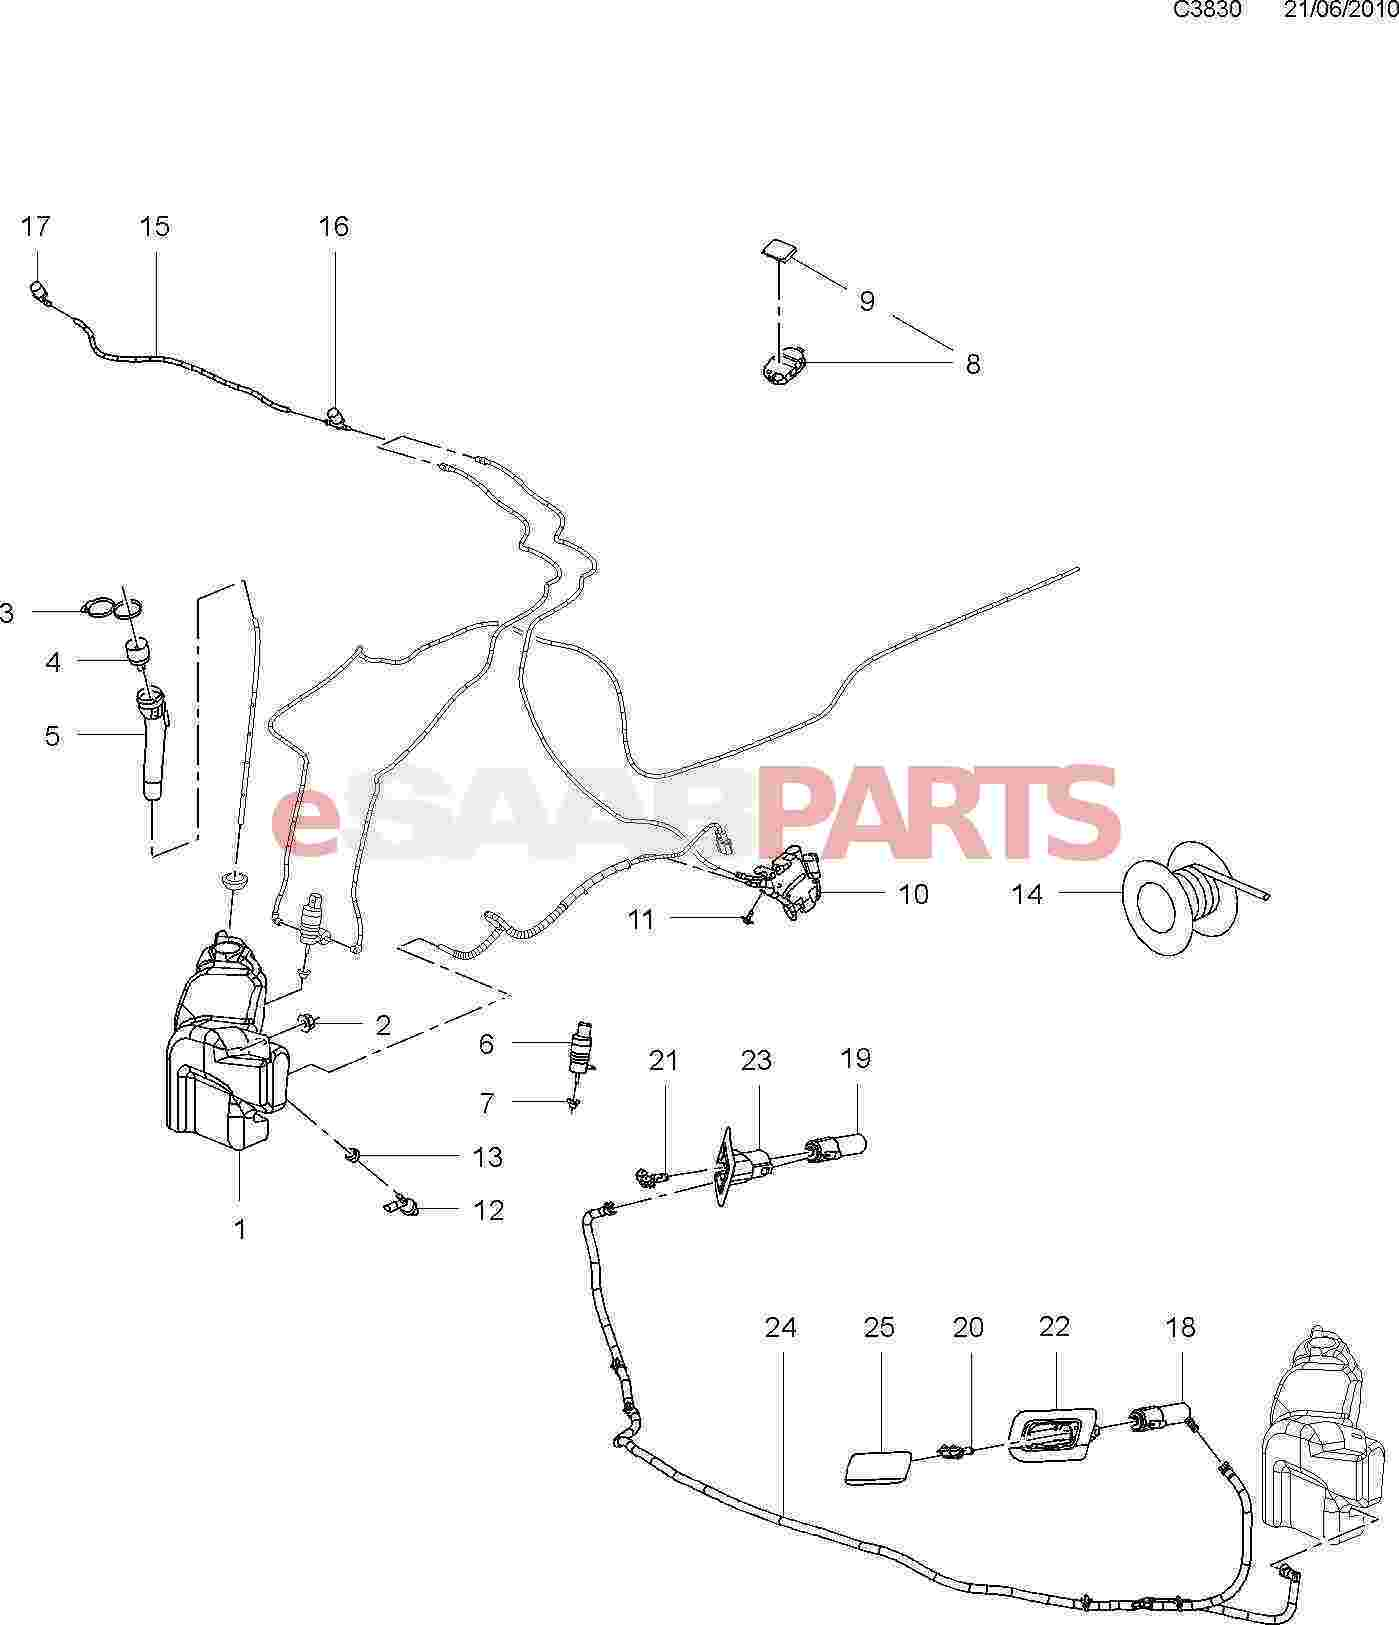 hight resolution of esaabparts com saab 9 5 650 electrical parts wipers washing system washer system headlamp washers